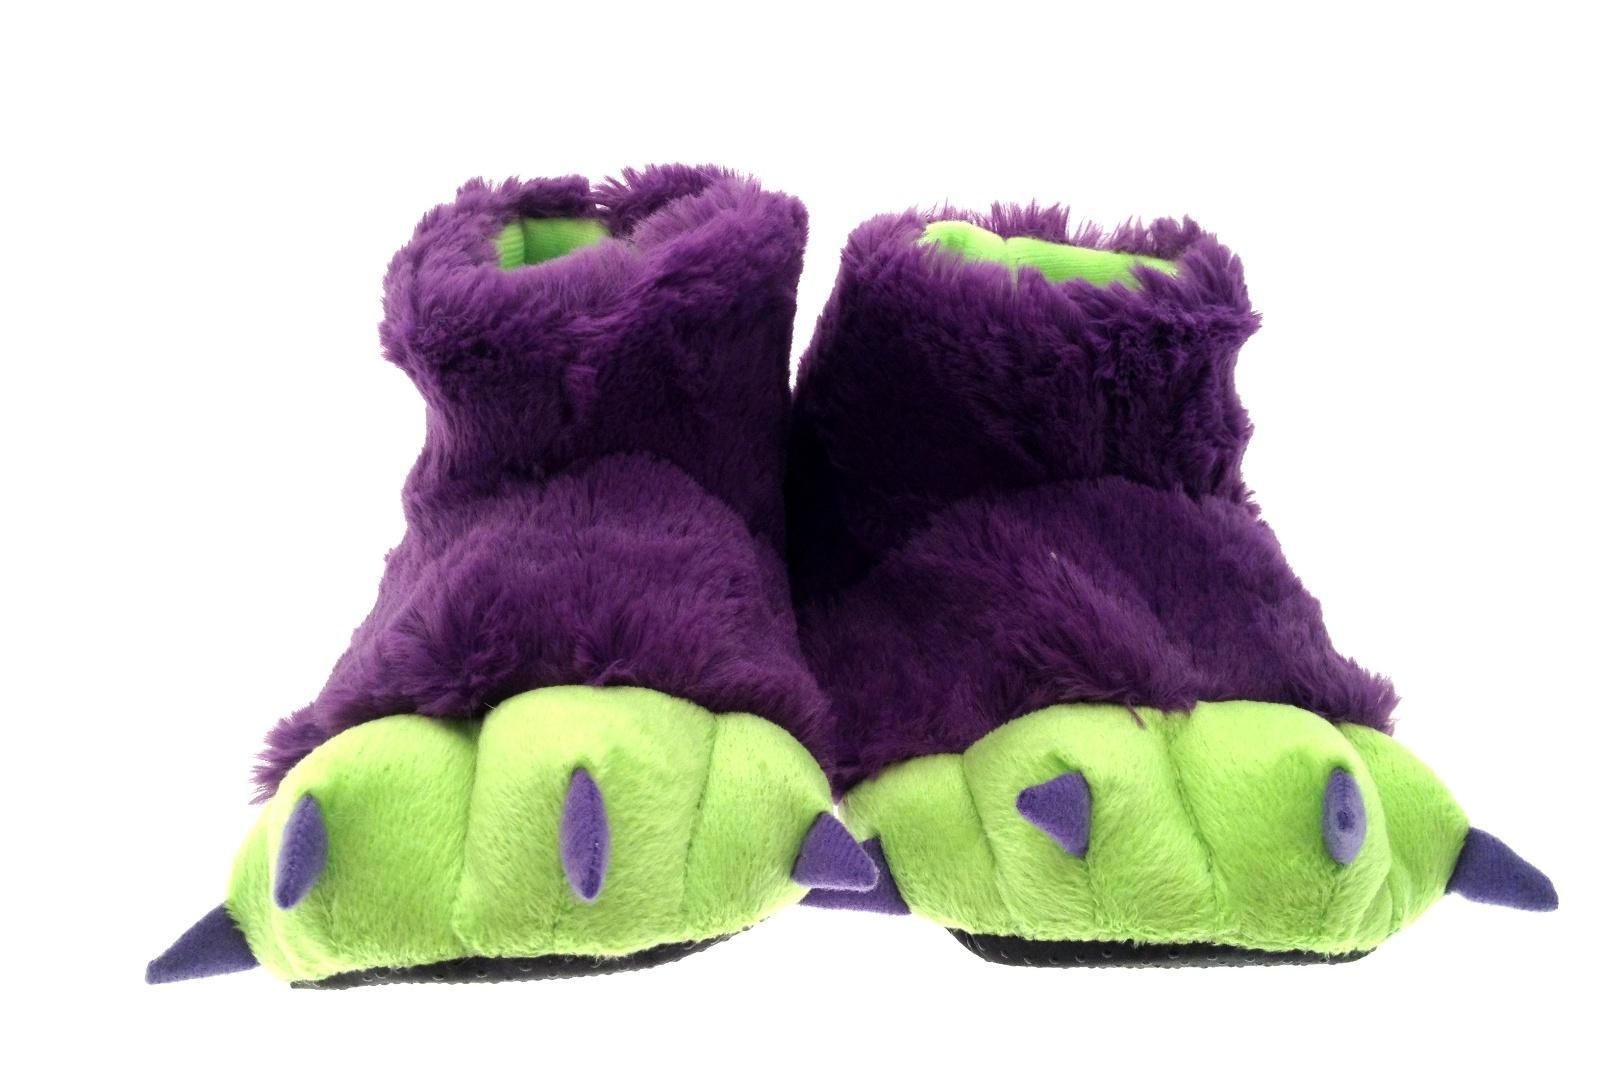 Adults Kids Unisex Cosplay Plush Slippers Monster Animal Paw Warm Indoor Shoes See more like this. NWT Boys Sz 2/3 (Medium/Large) Monster Bear Feet Claw Slippers Costume Halloween. Brand New. $ Gorilla Foot Hairy Monster Slippers Shoes Costume Toddler's Size Small New.